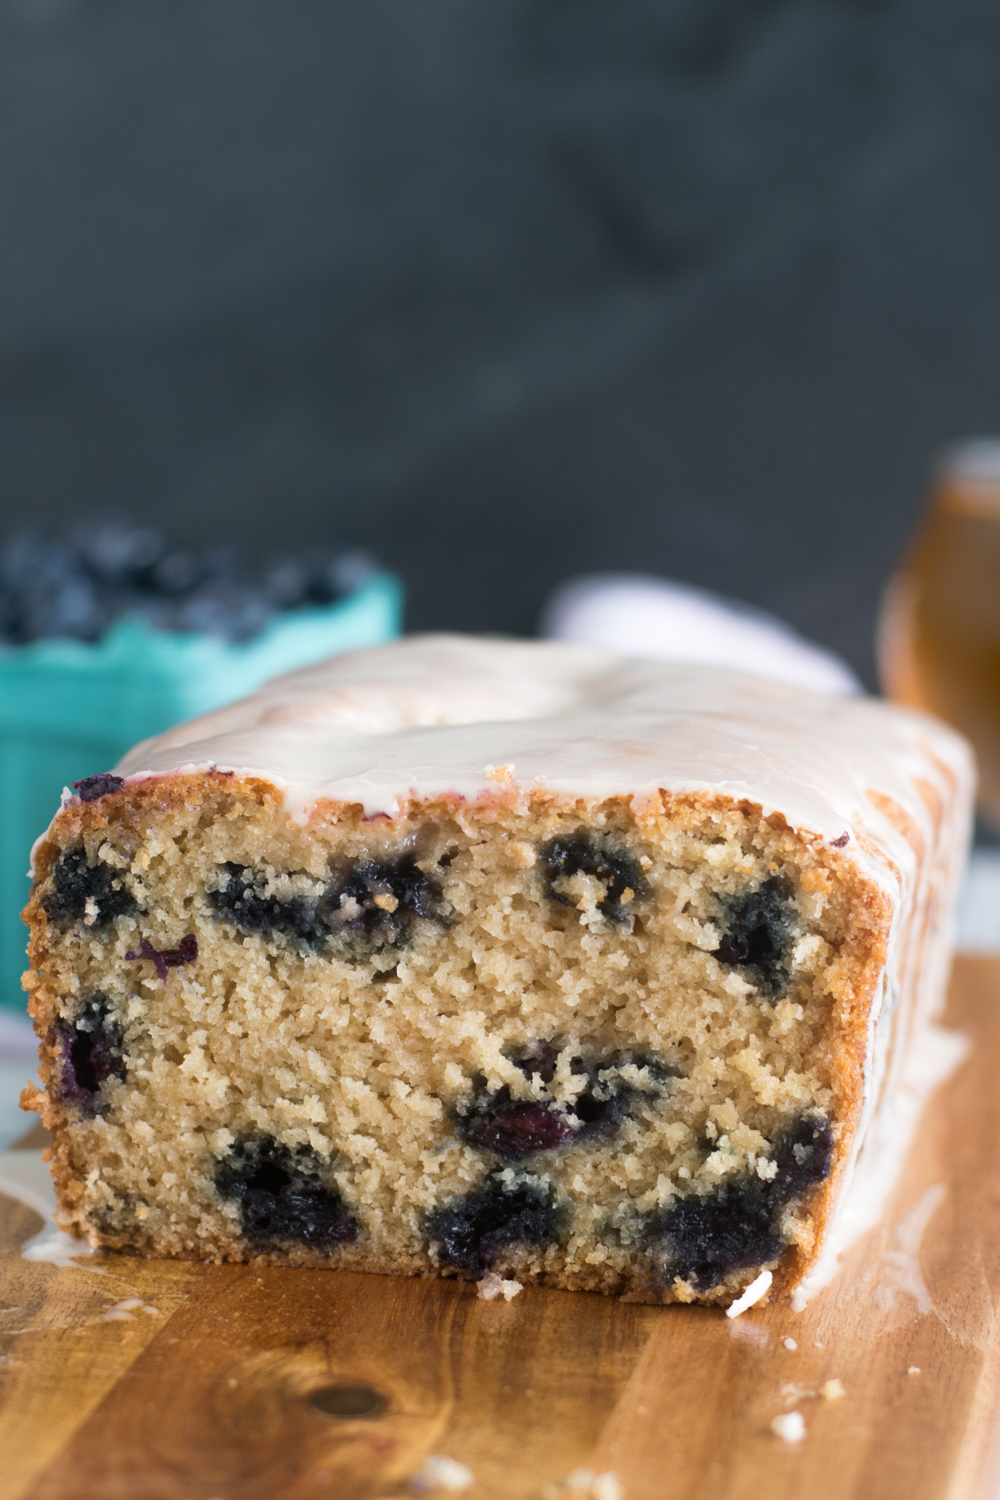 This Blueberry Lemon Beer Bread is light, tender and delicious! It's topped with a lemon glaze.